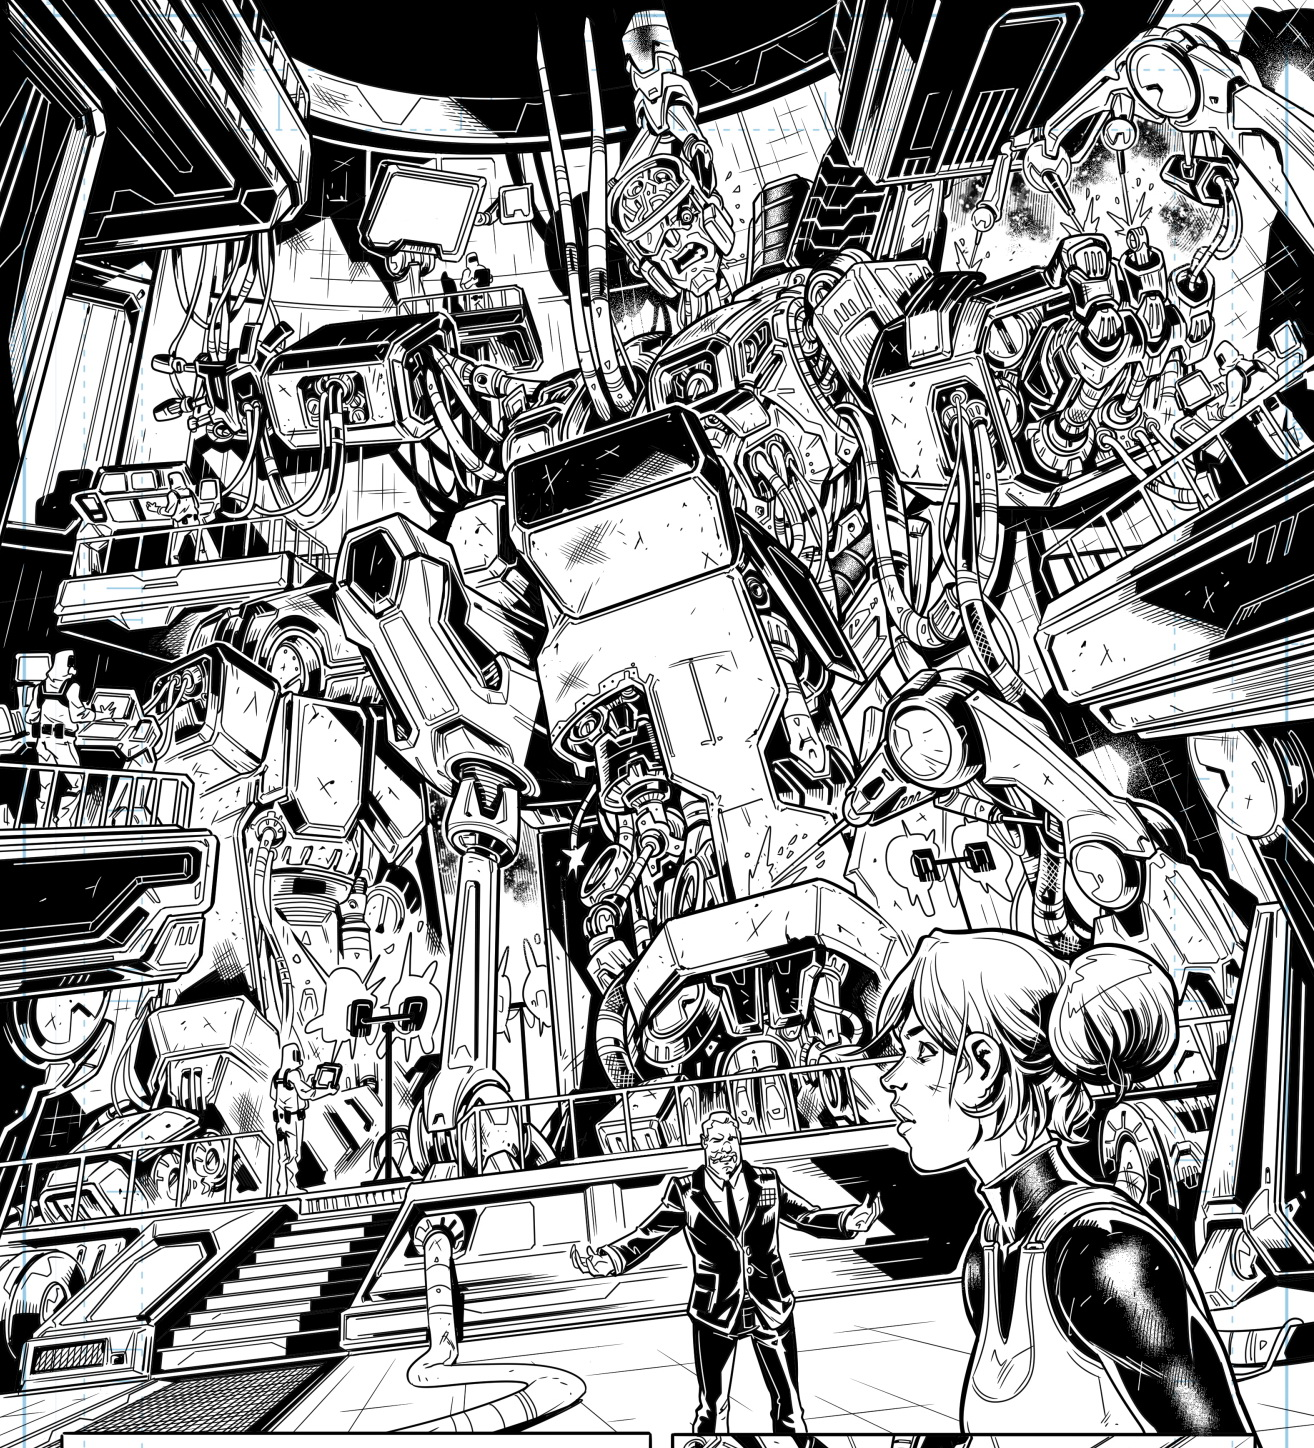 rev_02_inks_page8